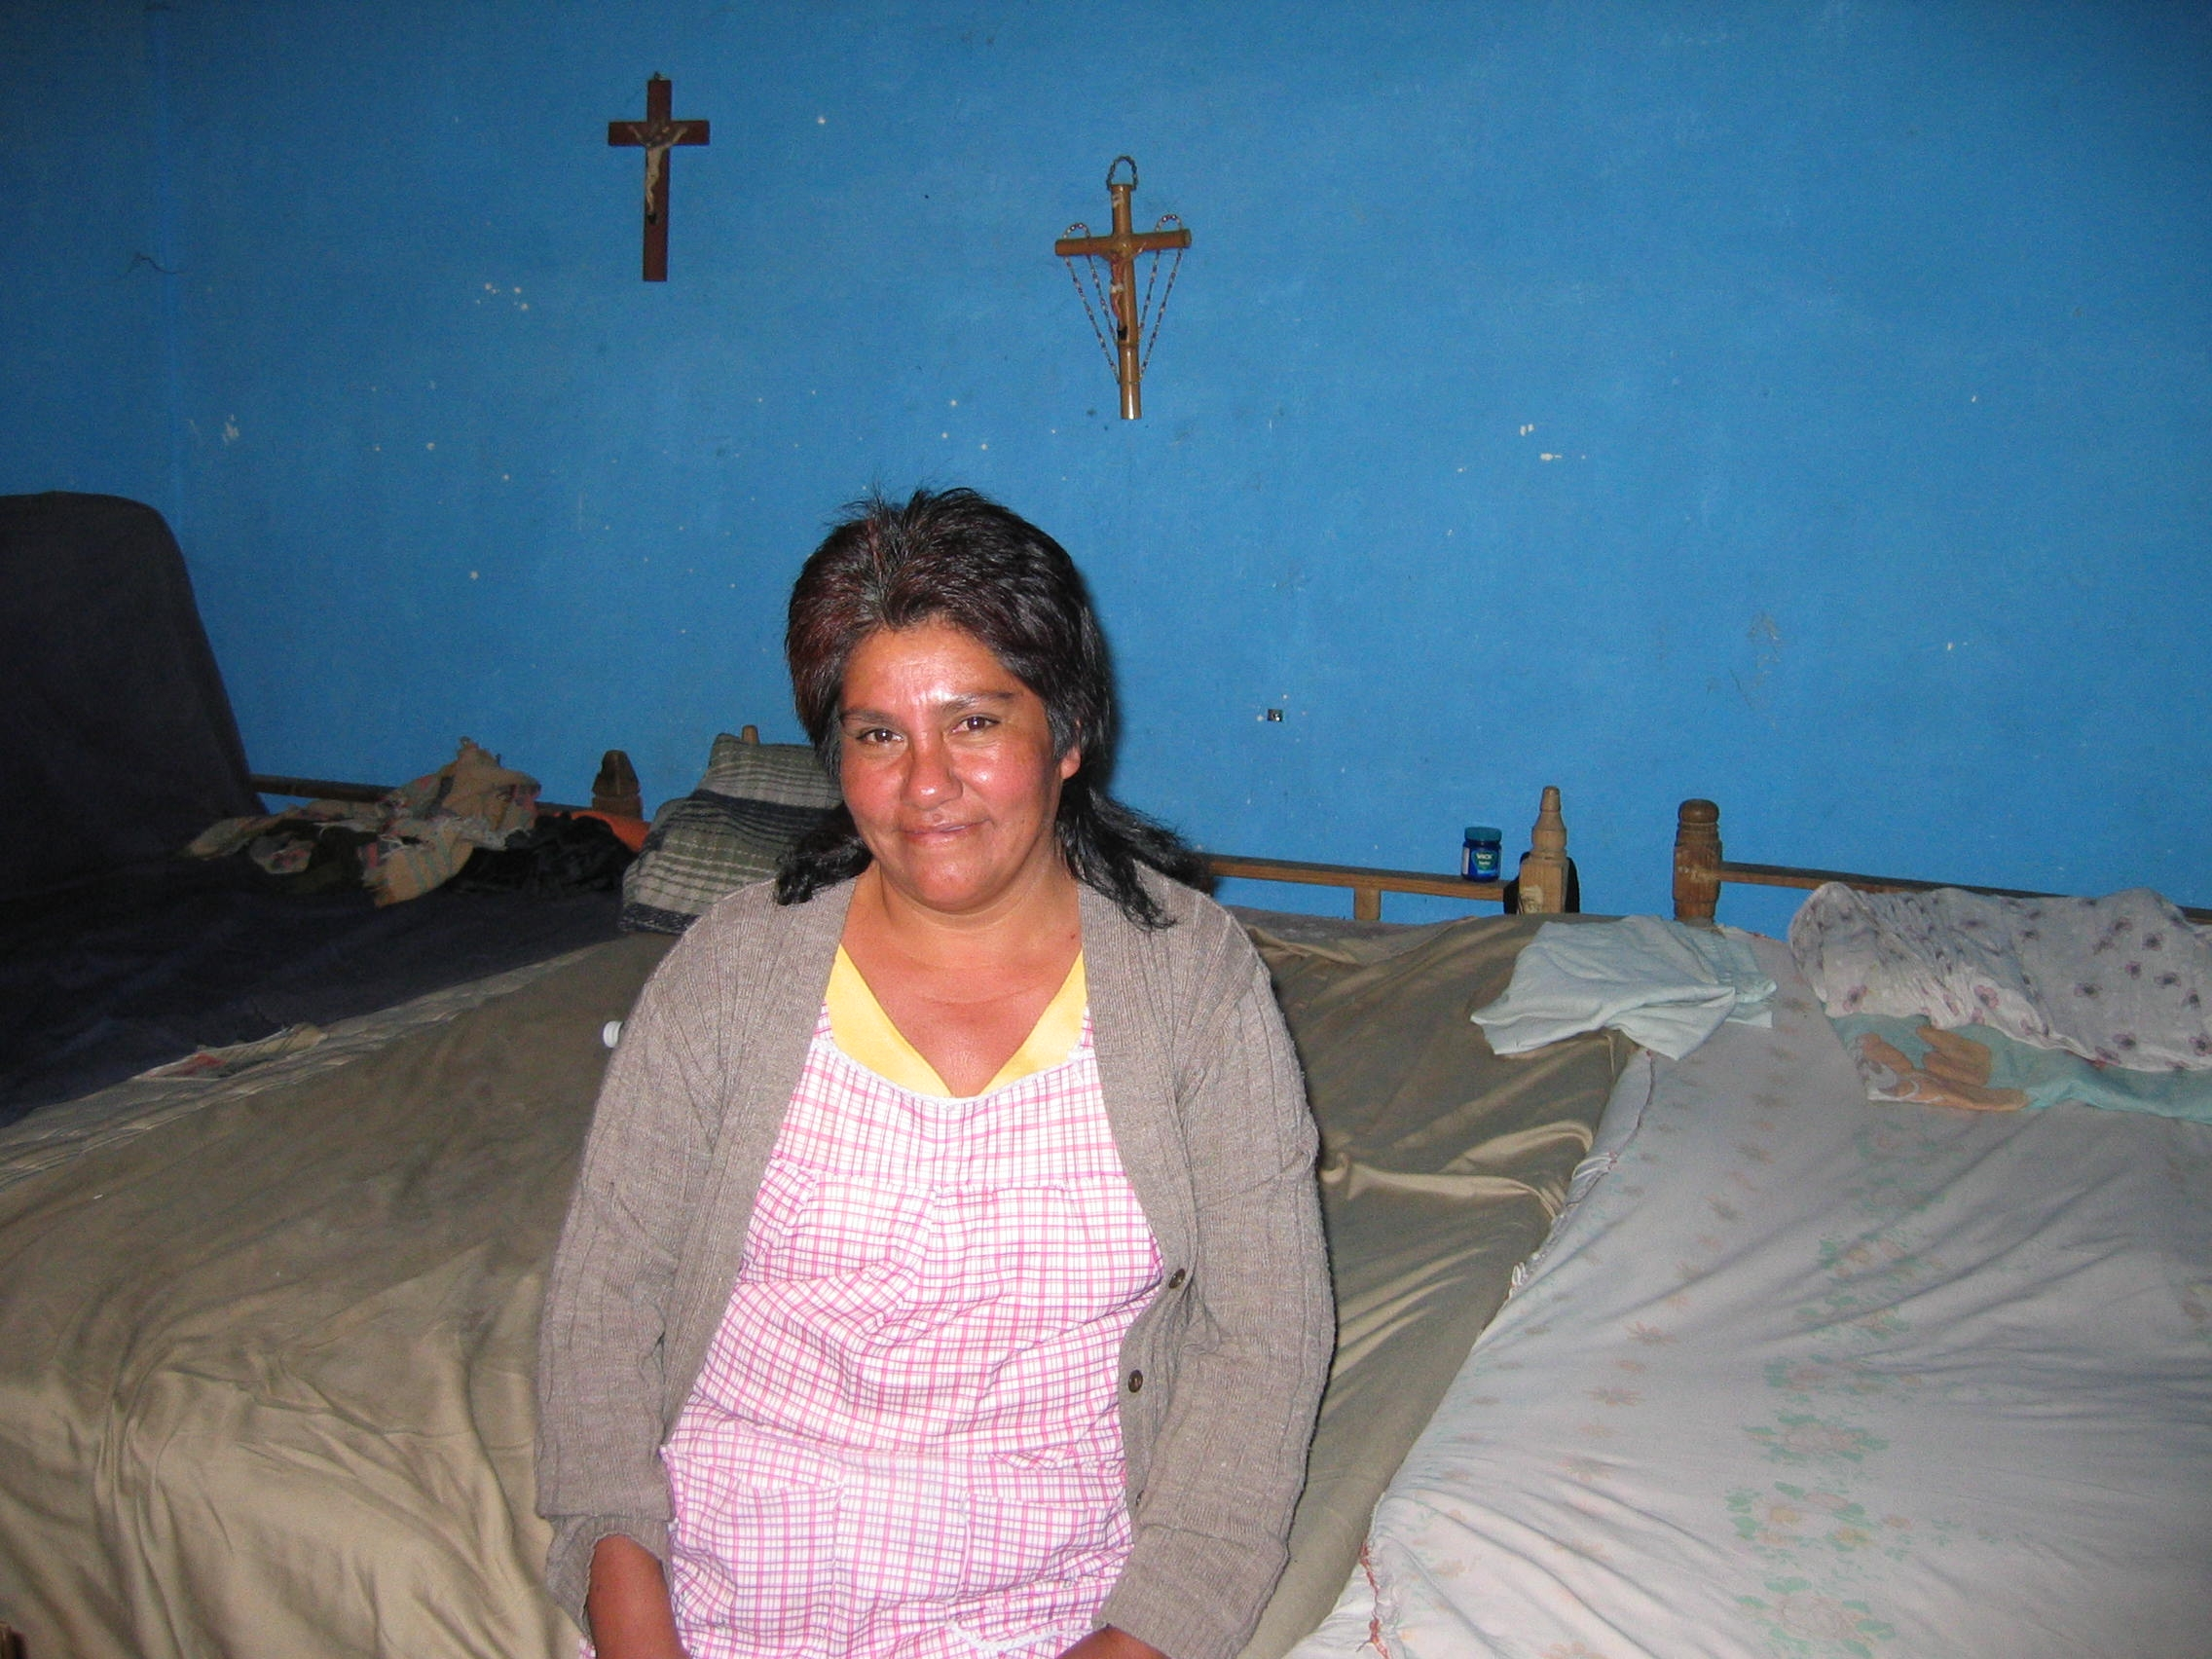 Francisca Aguirre Juárez allows tired migrants to sleep in her one-room home. In two years, 80 migrants have slept in her home, which is so cramped that three beds are shoved together.